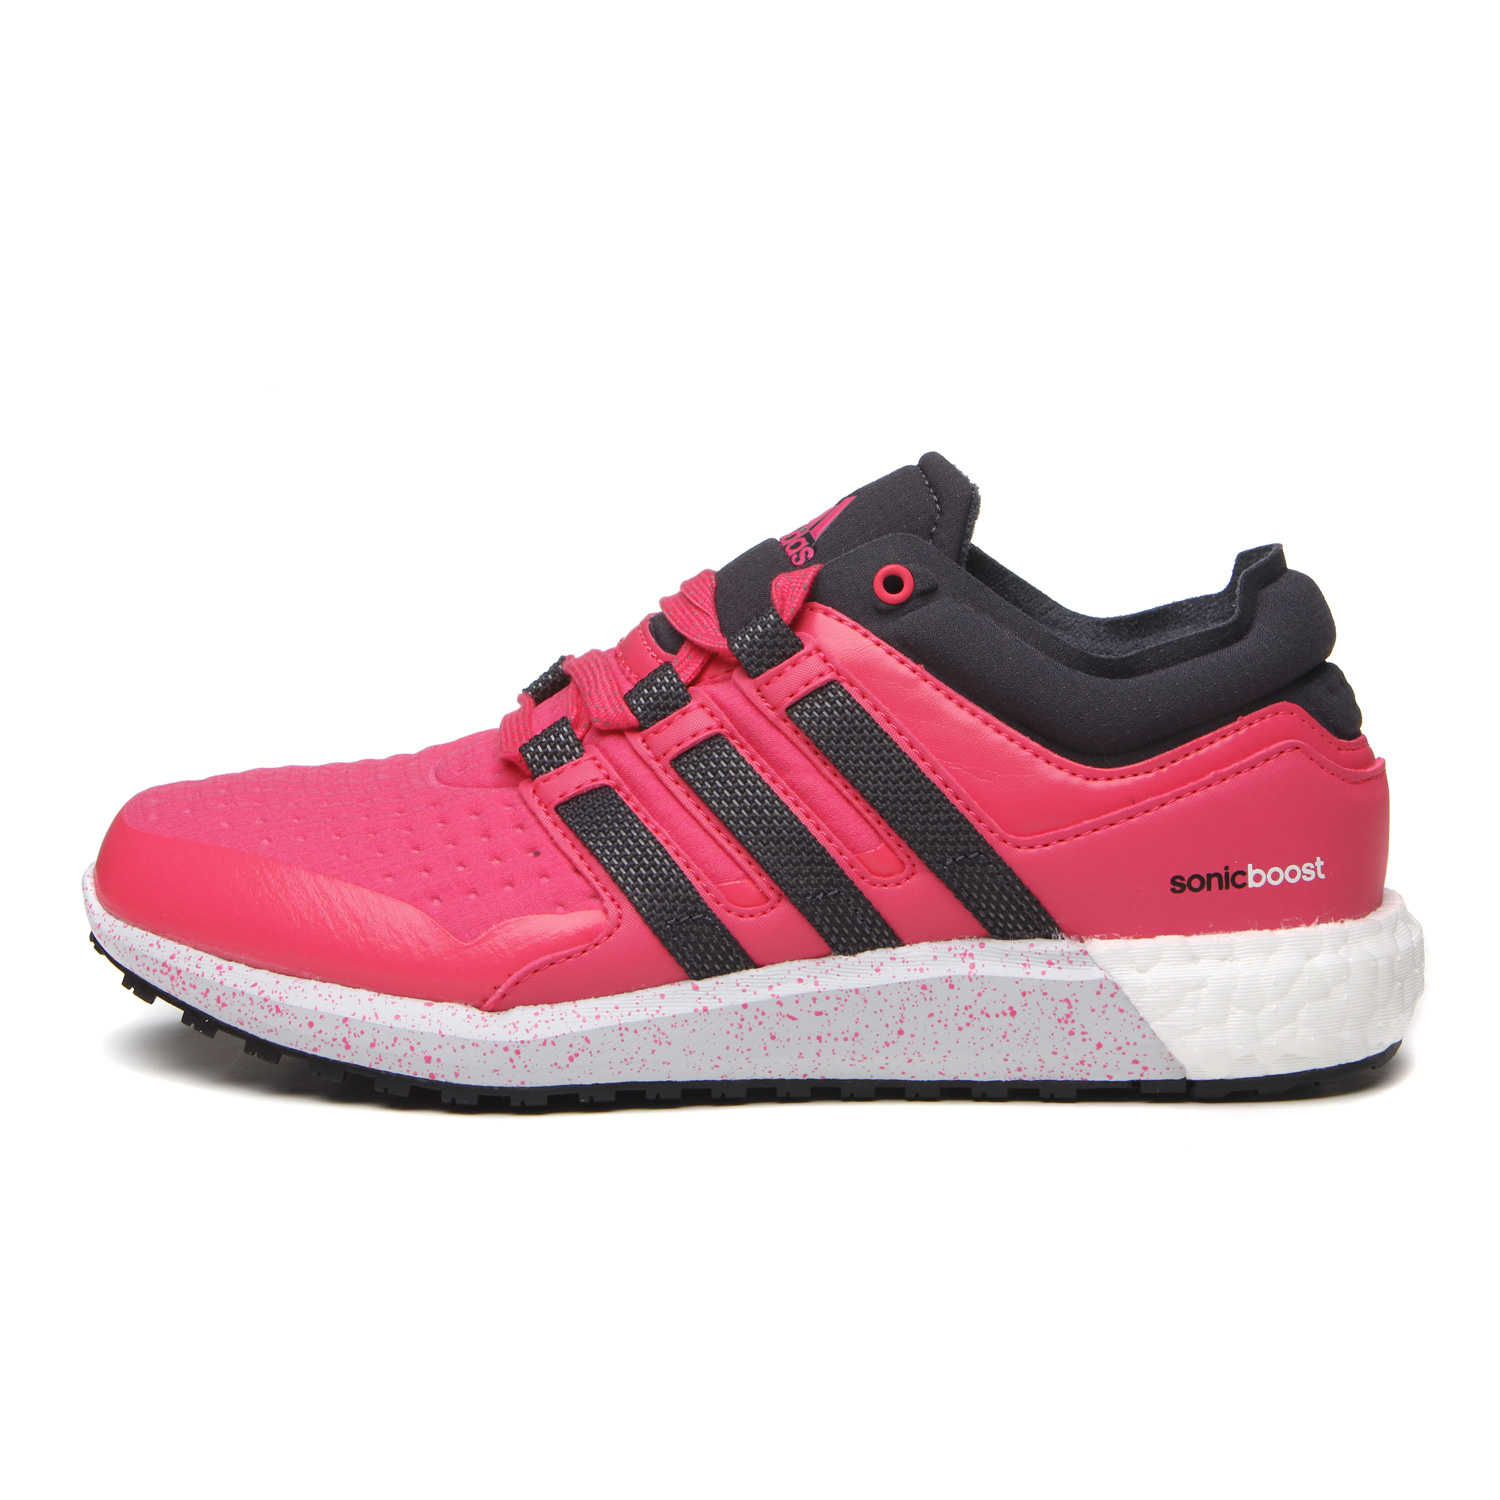 Adidas/adidas counters shoes running shoes sneakers boost B2525 9 models spot